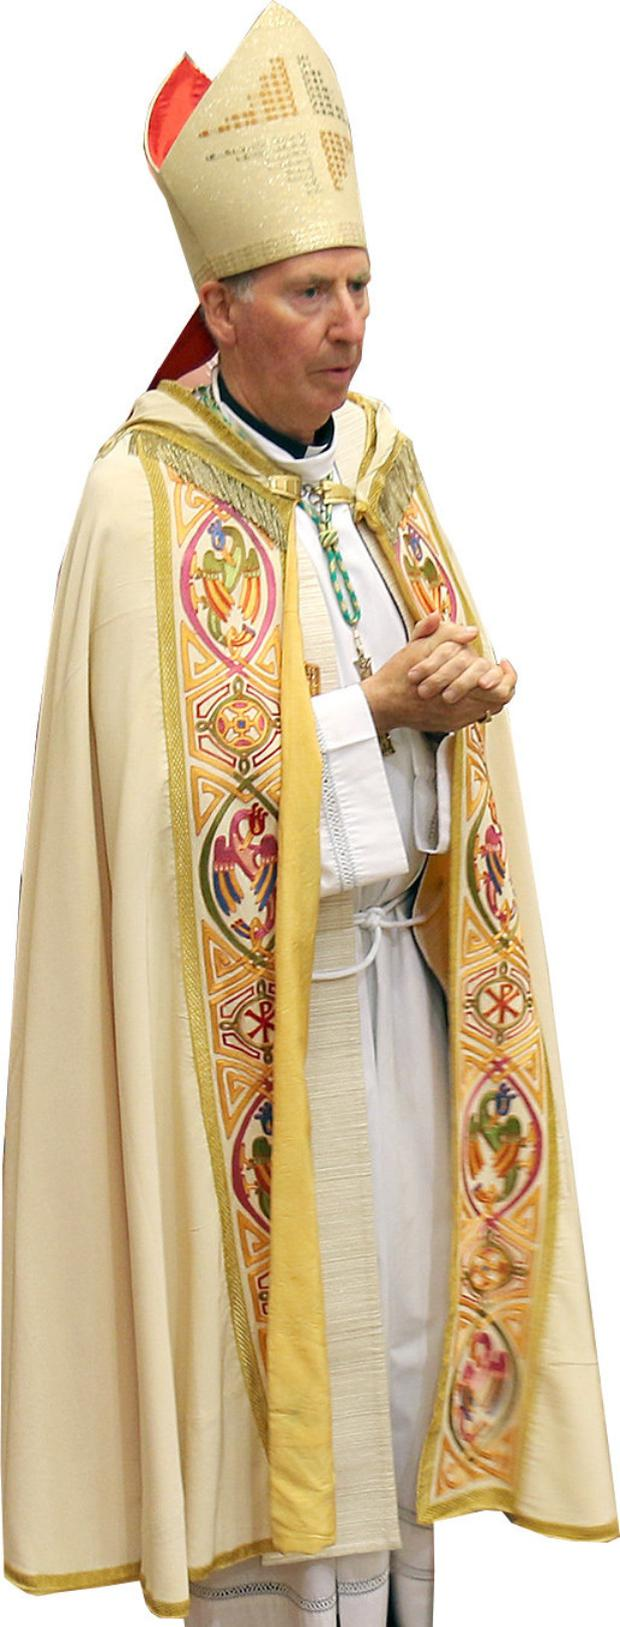 Bishop Denis Brennan